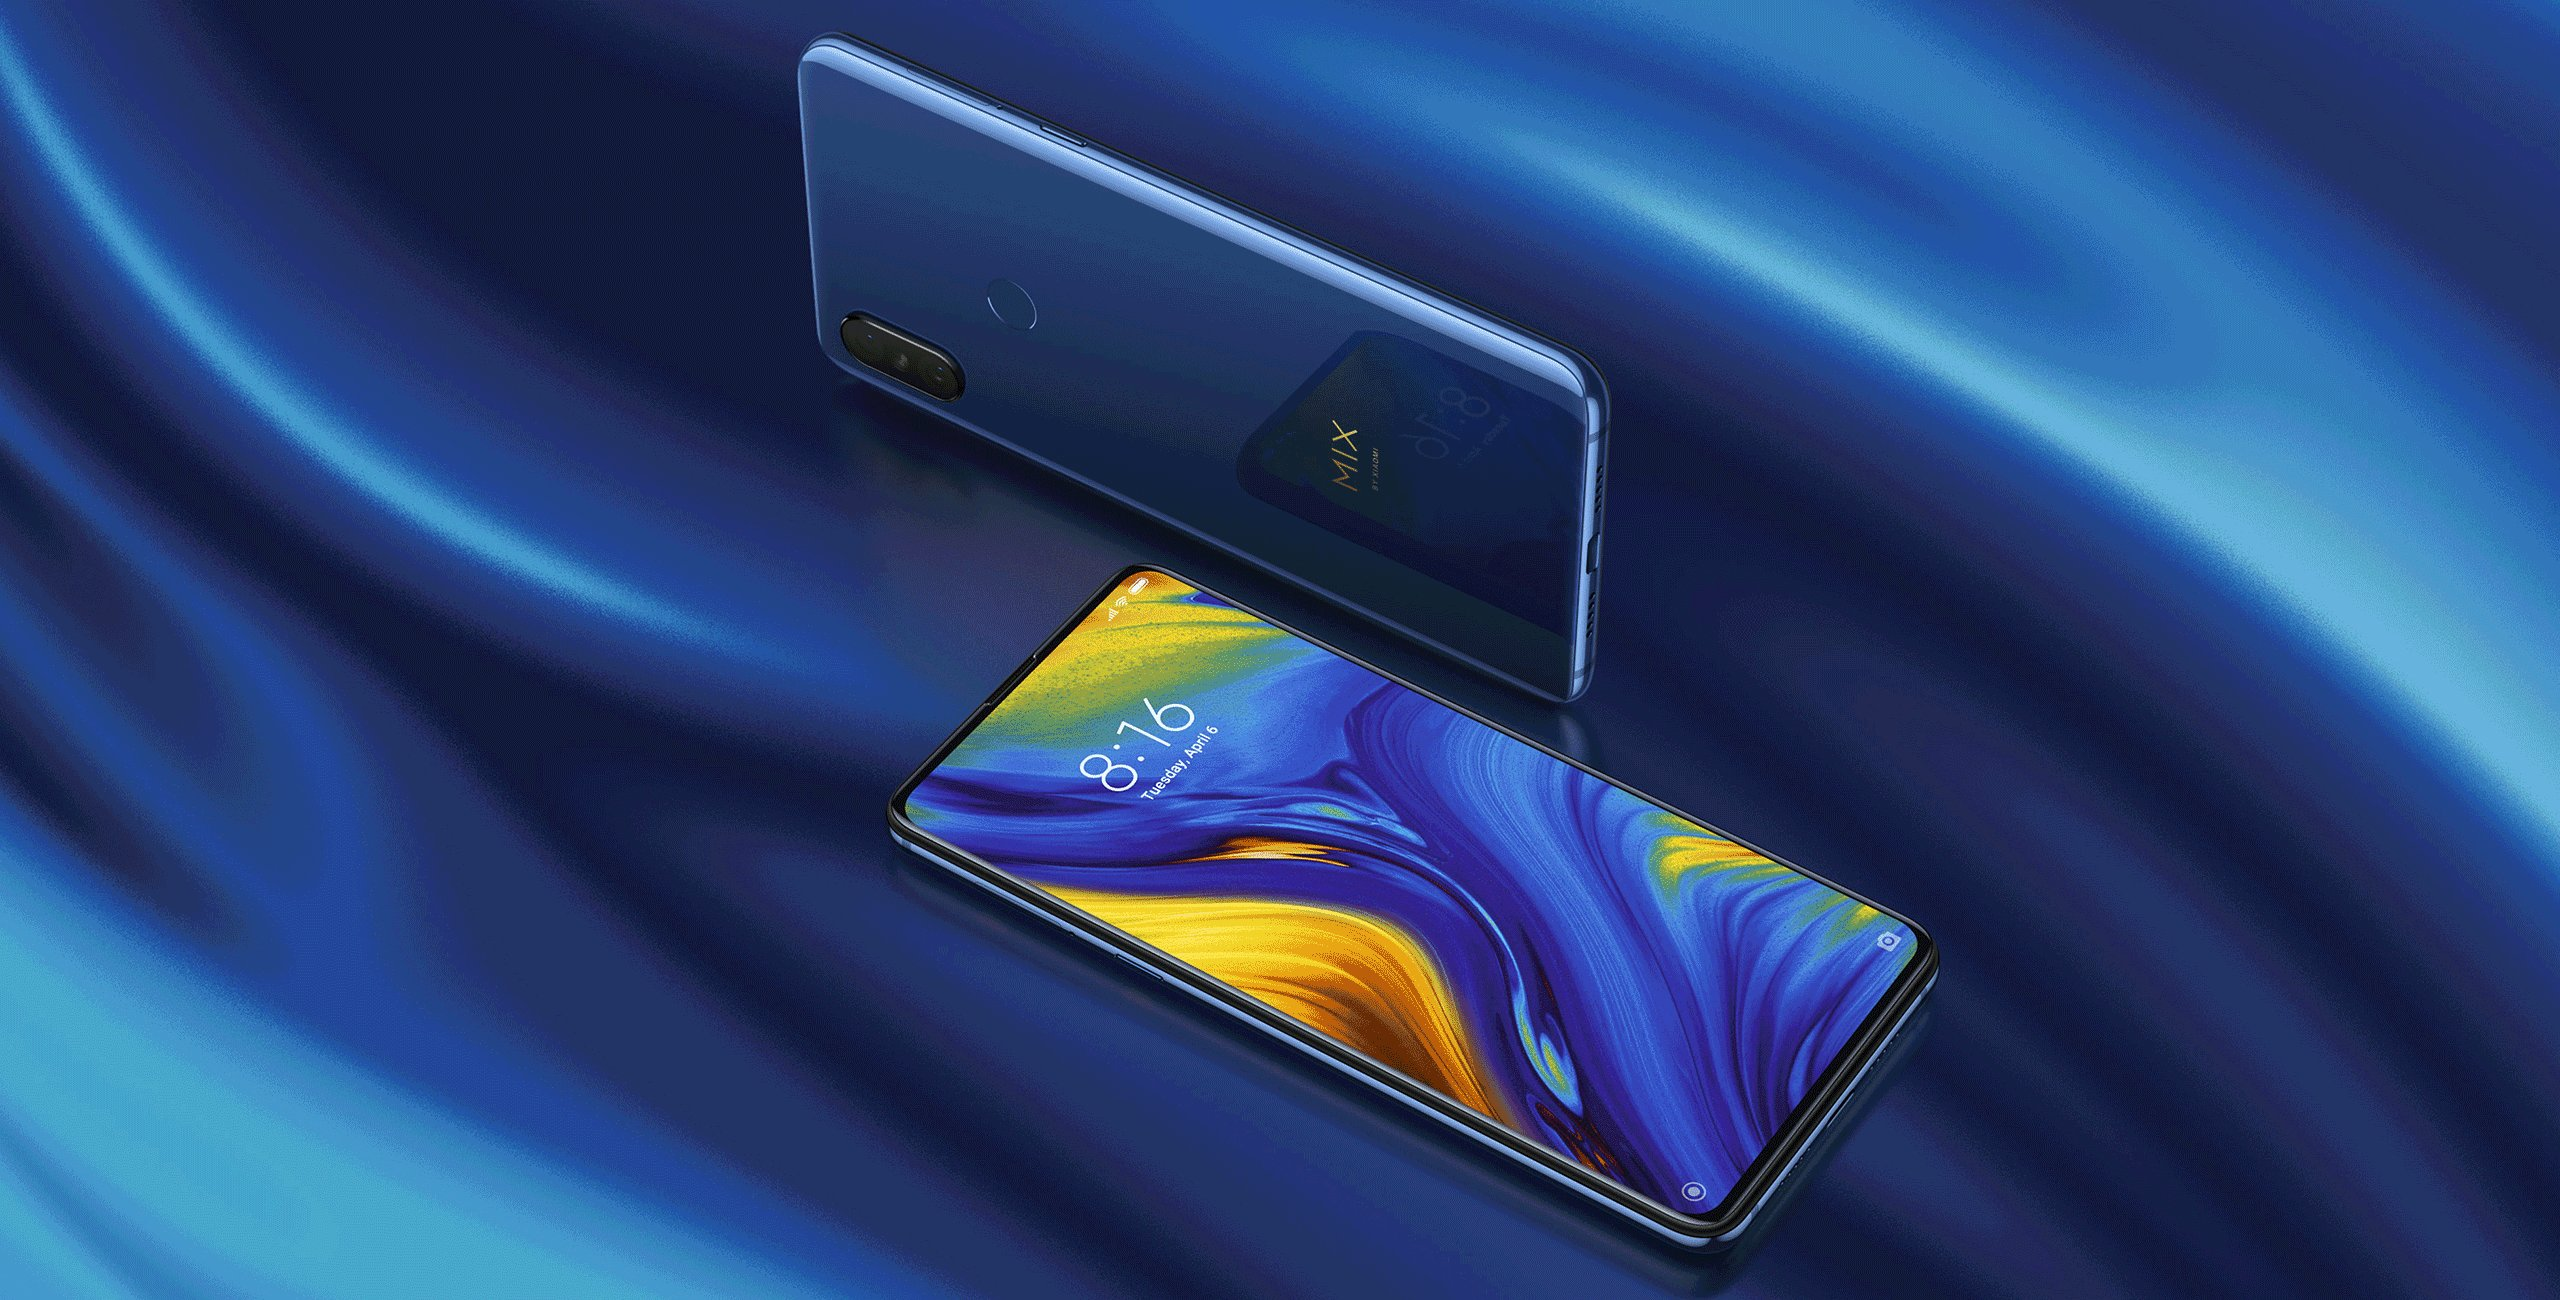 Mi MIX 3 okostelefon - 6+128GB, zafírkék - Global